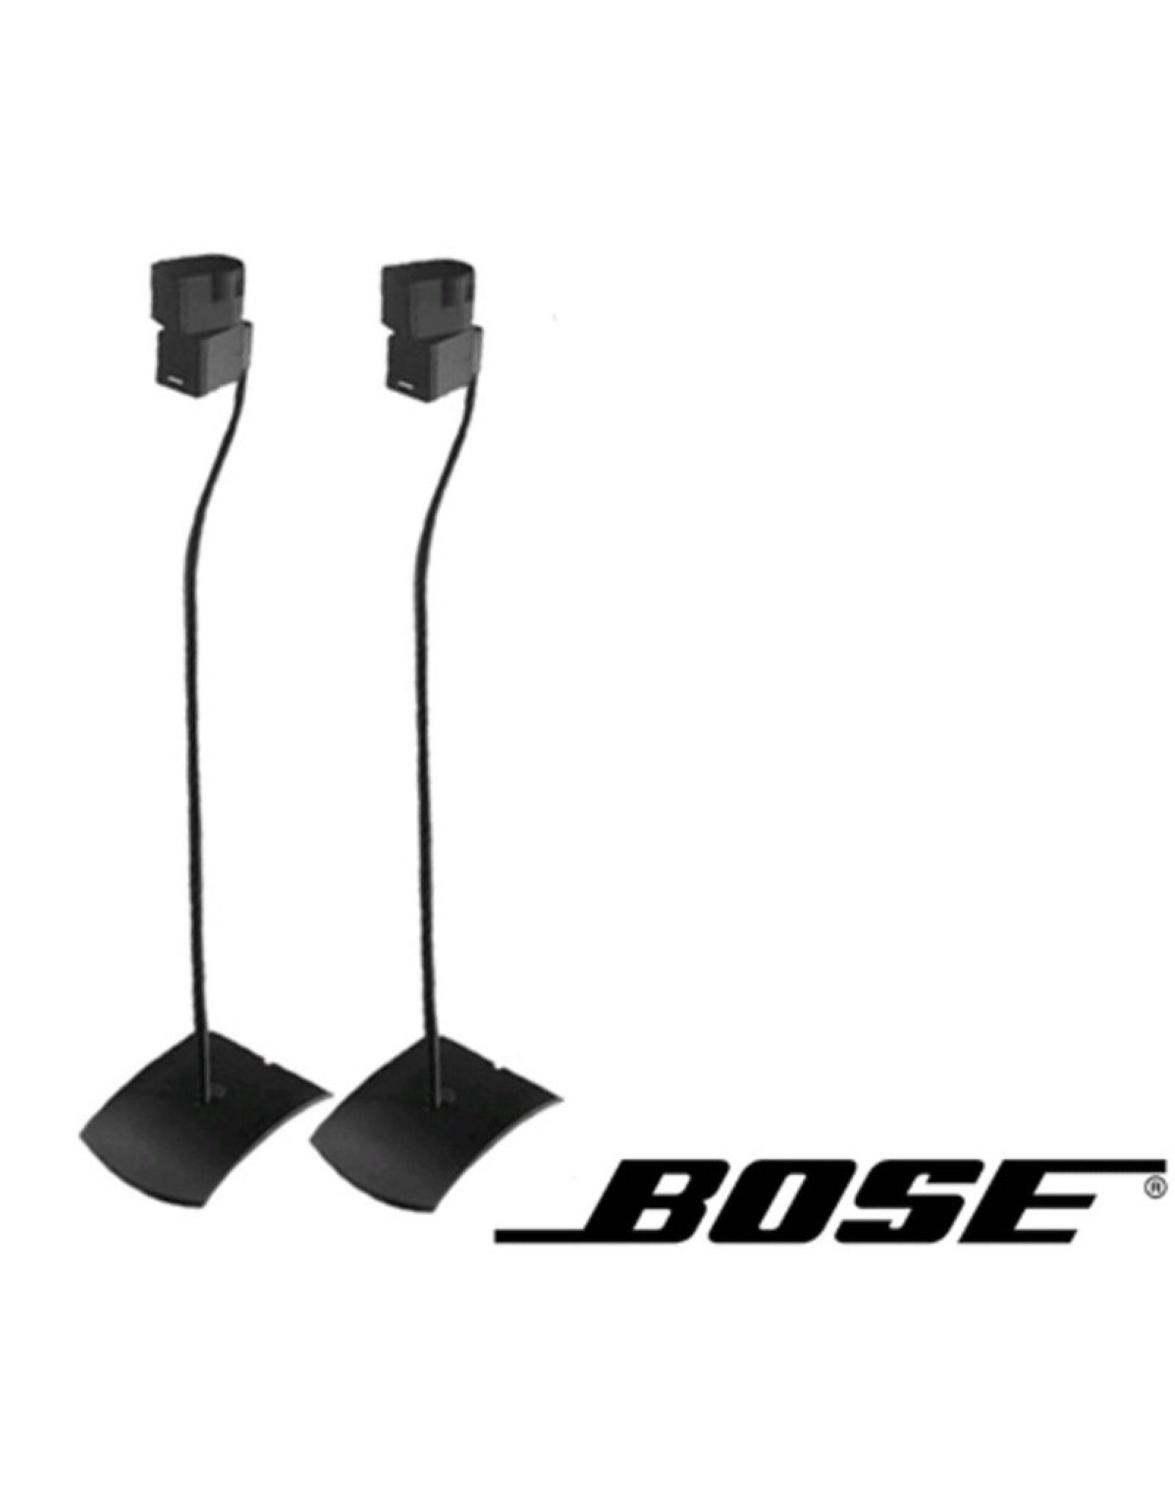 best bose ufs 20 universal speaker floor stands 2 pair. Black Bedroom Furniture Sets. Home Design Ideas